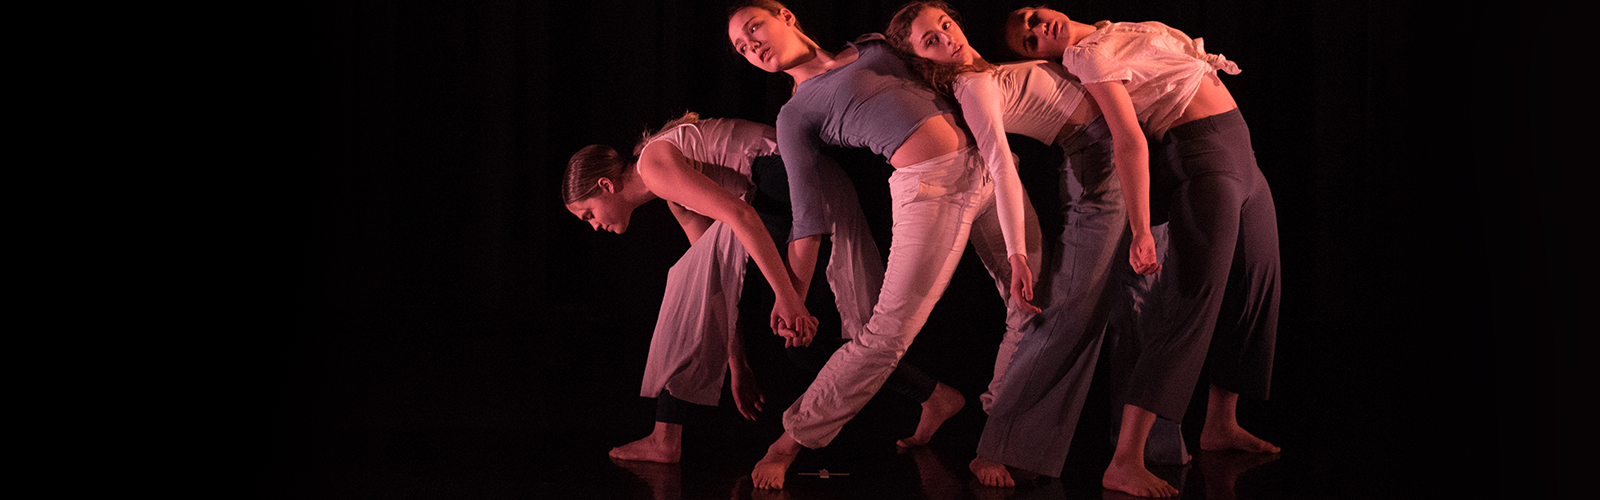 dancers in front of black backrop performing and leaning against one another